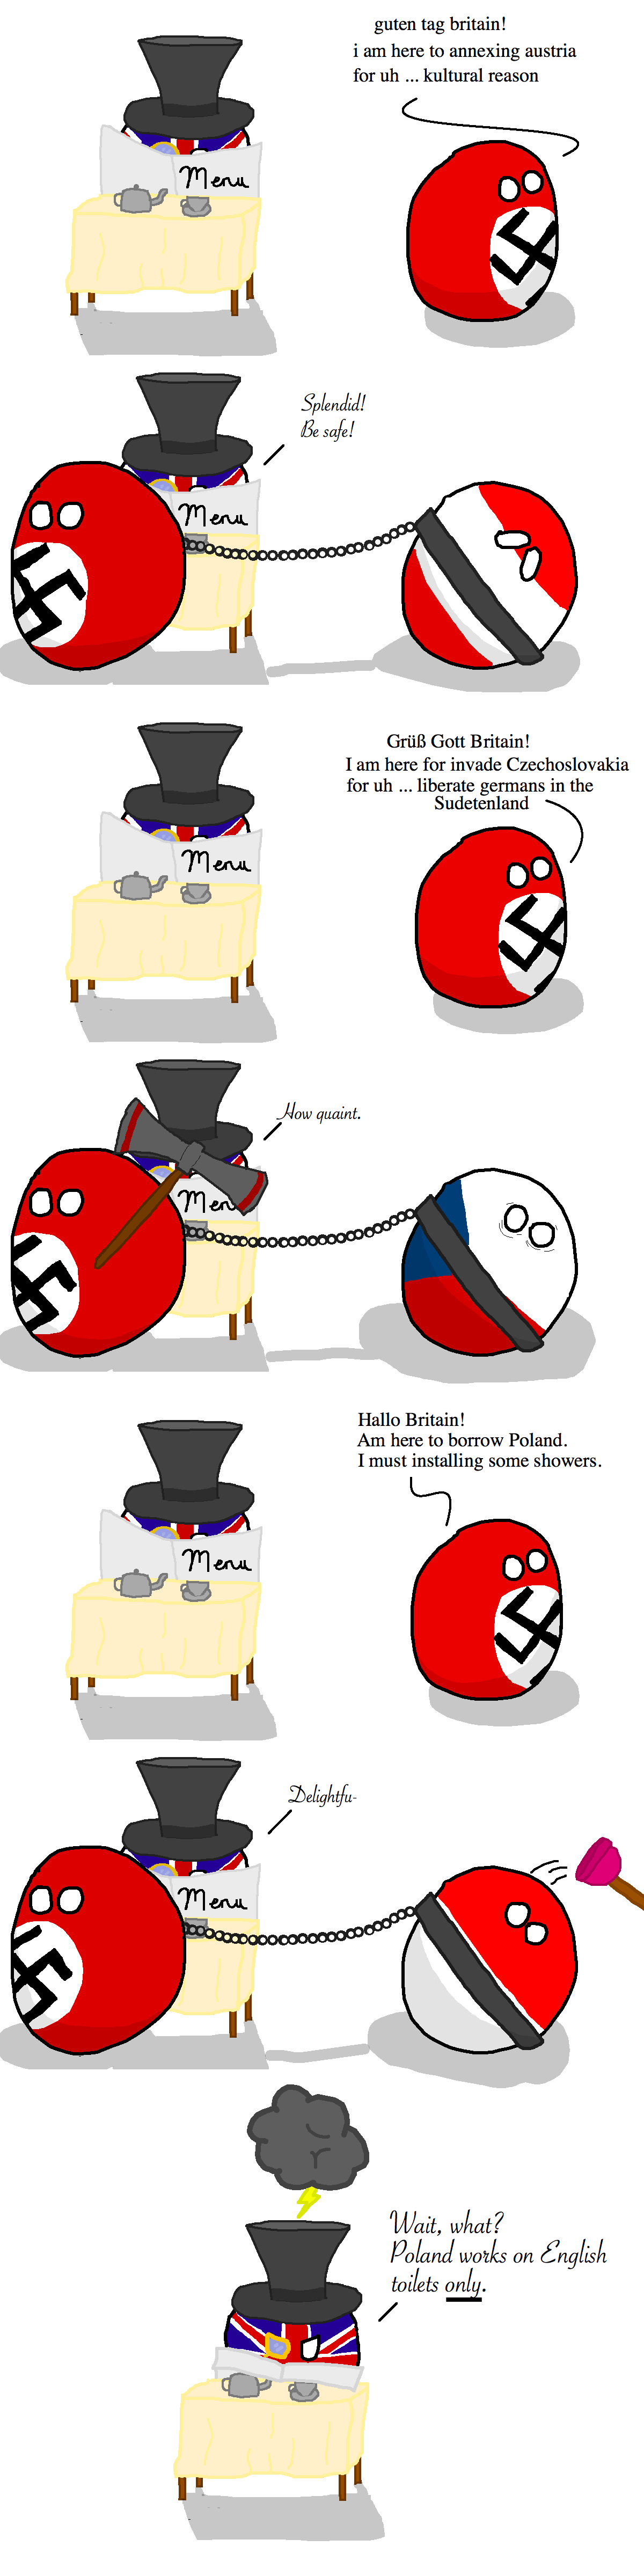 meme when theres peace in europe ball